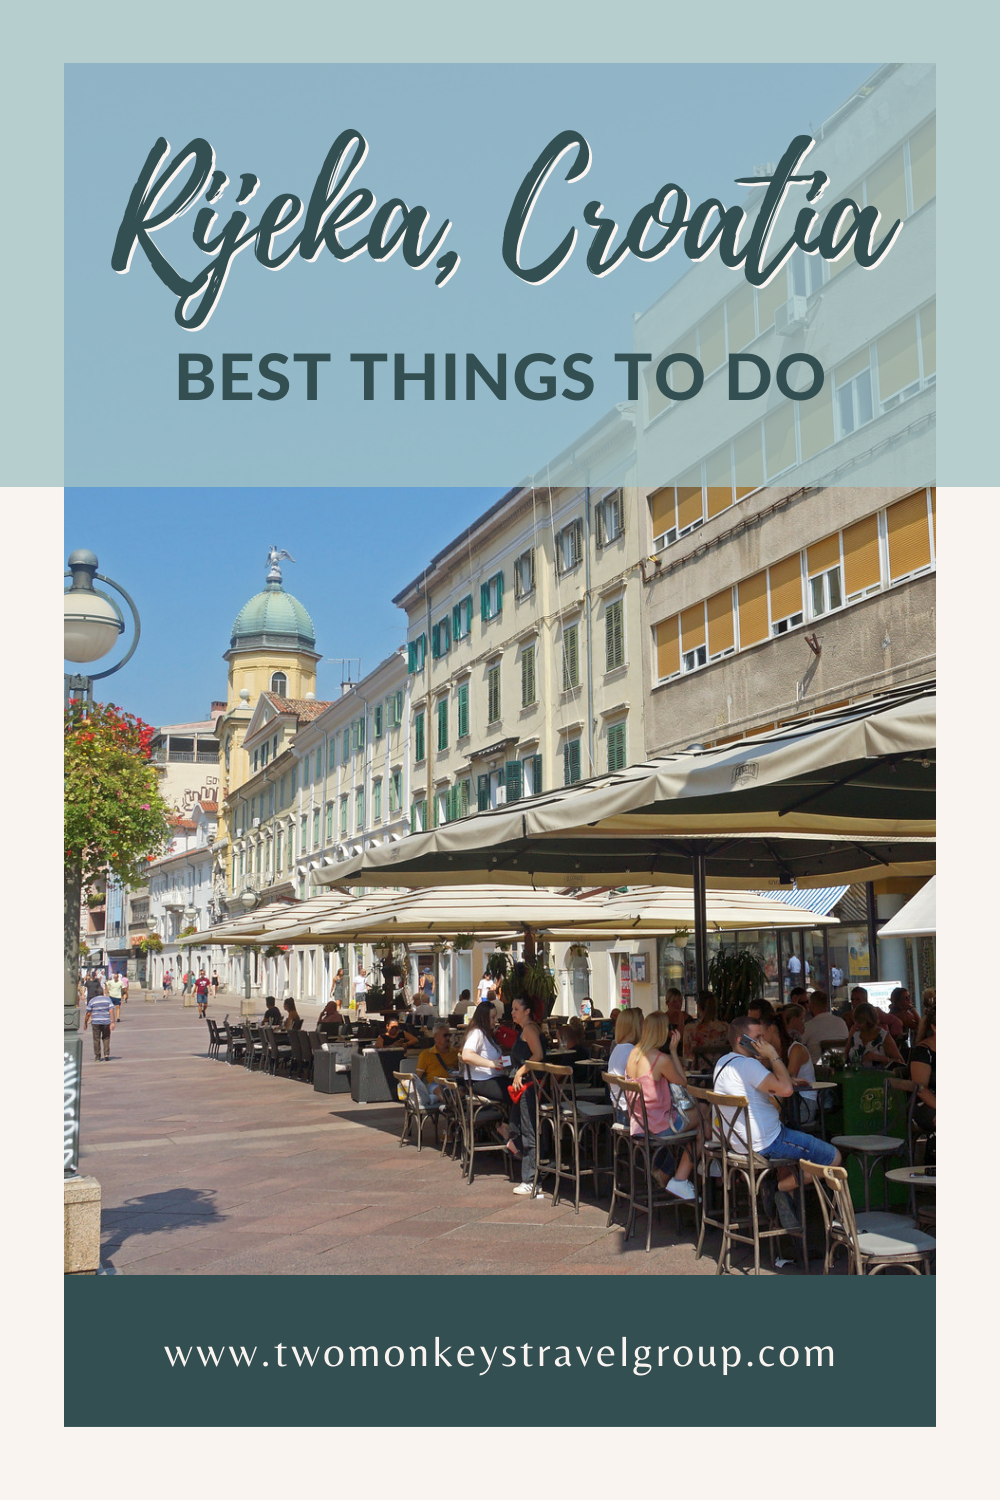 10 Best Things to do in Rijeka, Croatia [with Suggested Tours]